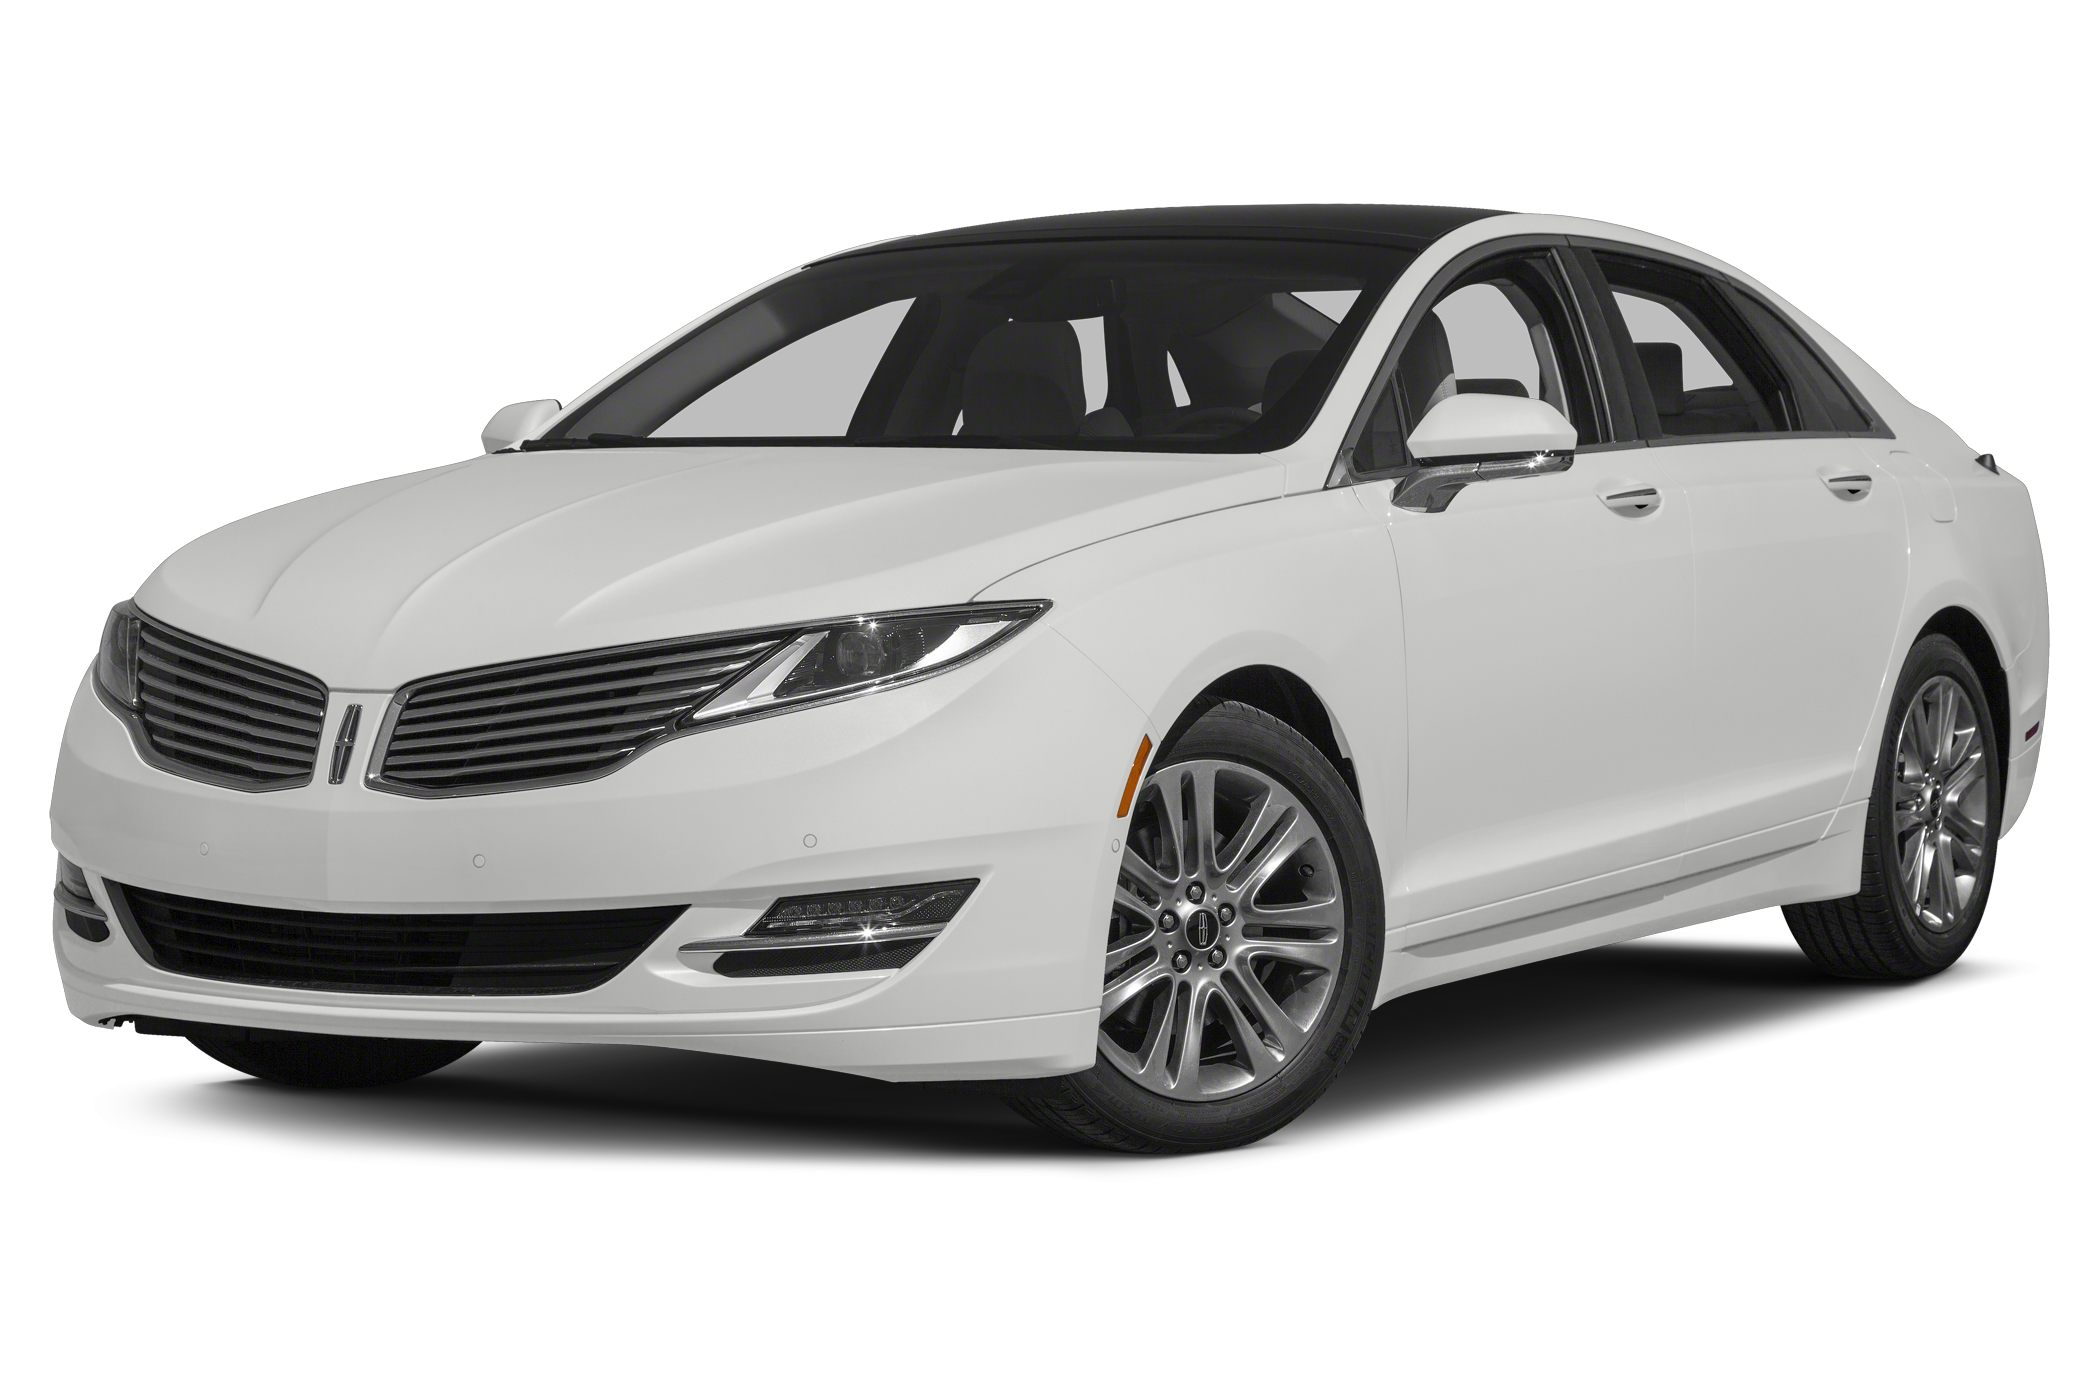 2014 Lincoln MKZ Base Sedan for sale in Roswell for $42,655 with 6,461 miles.